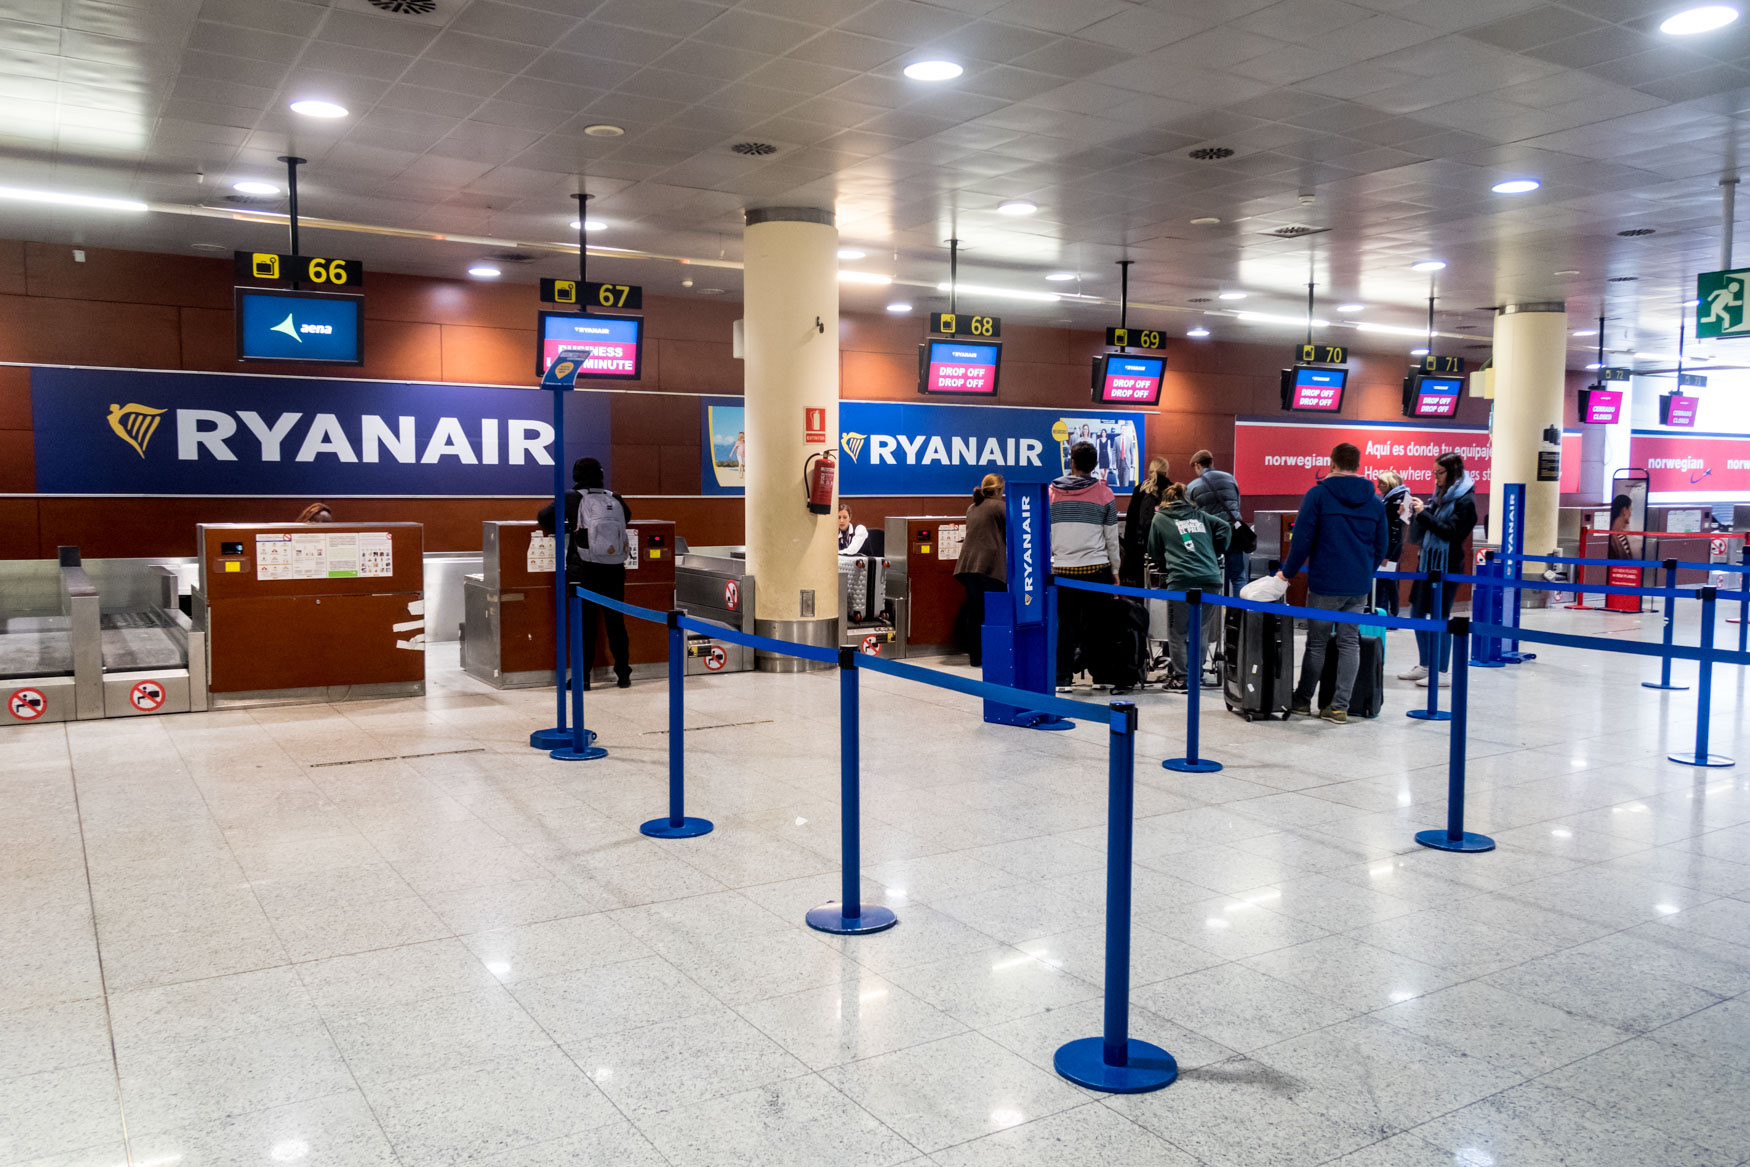 Ryanair Check-In Counters at Barcelona Airport